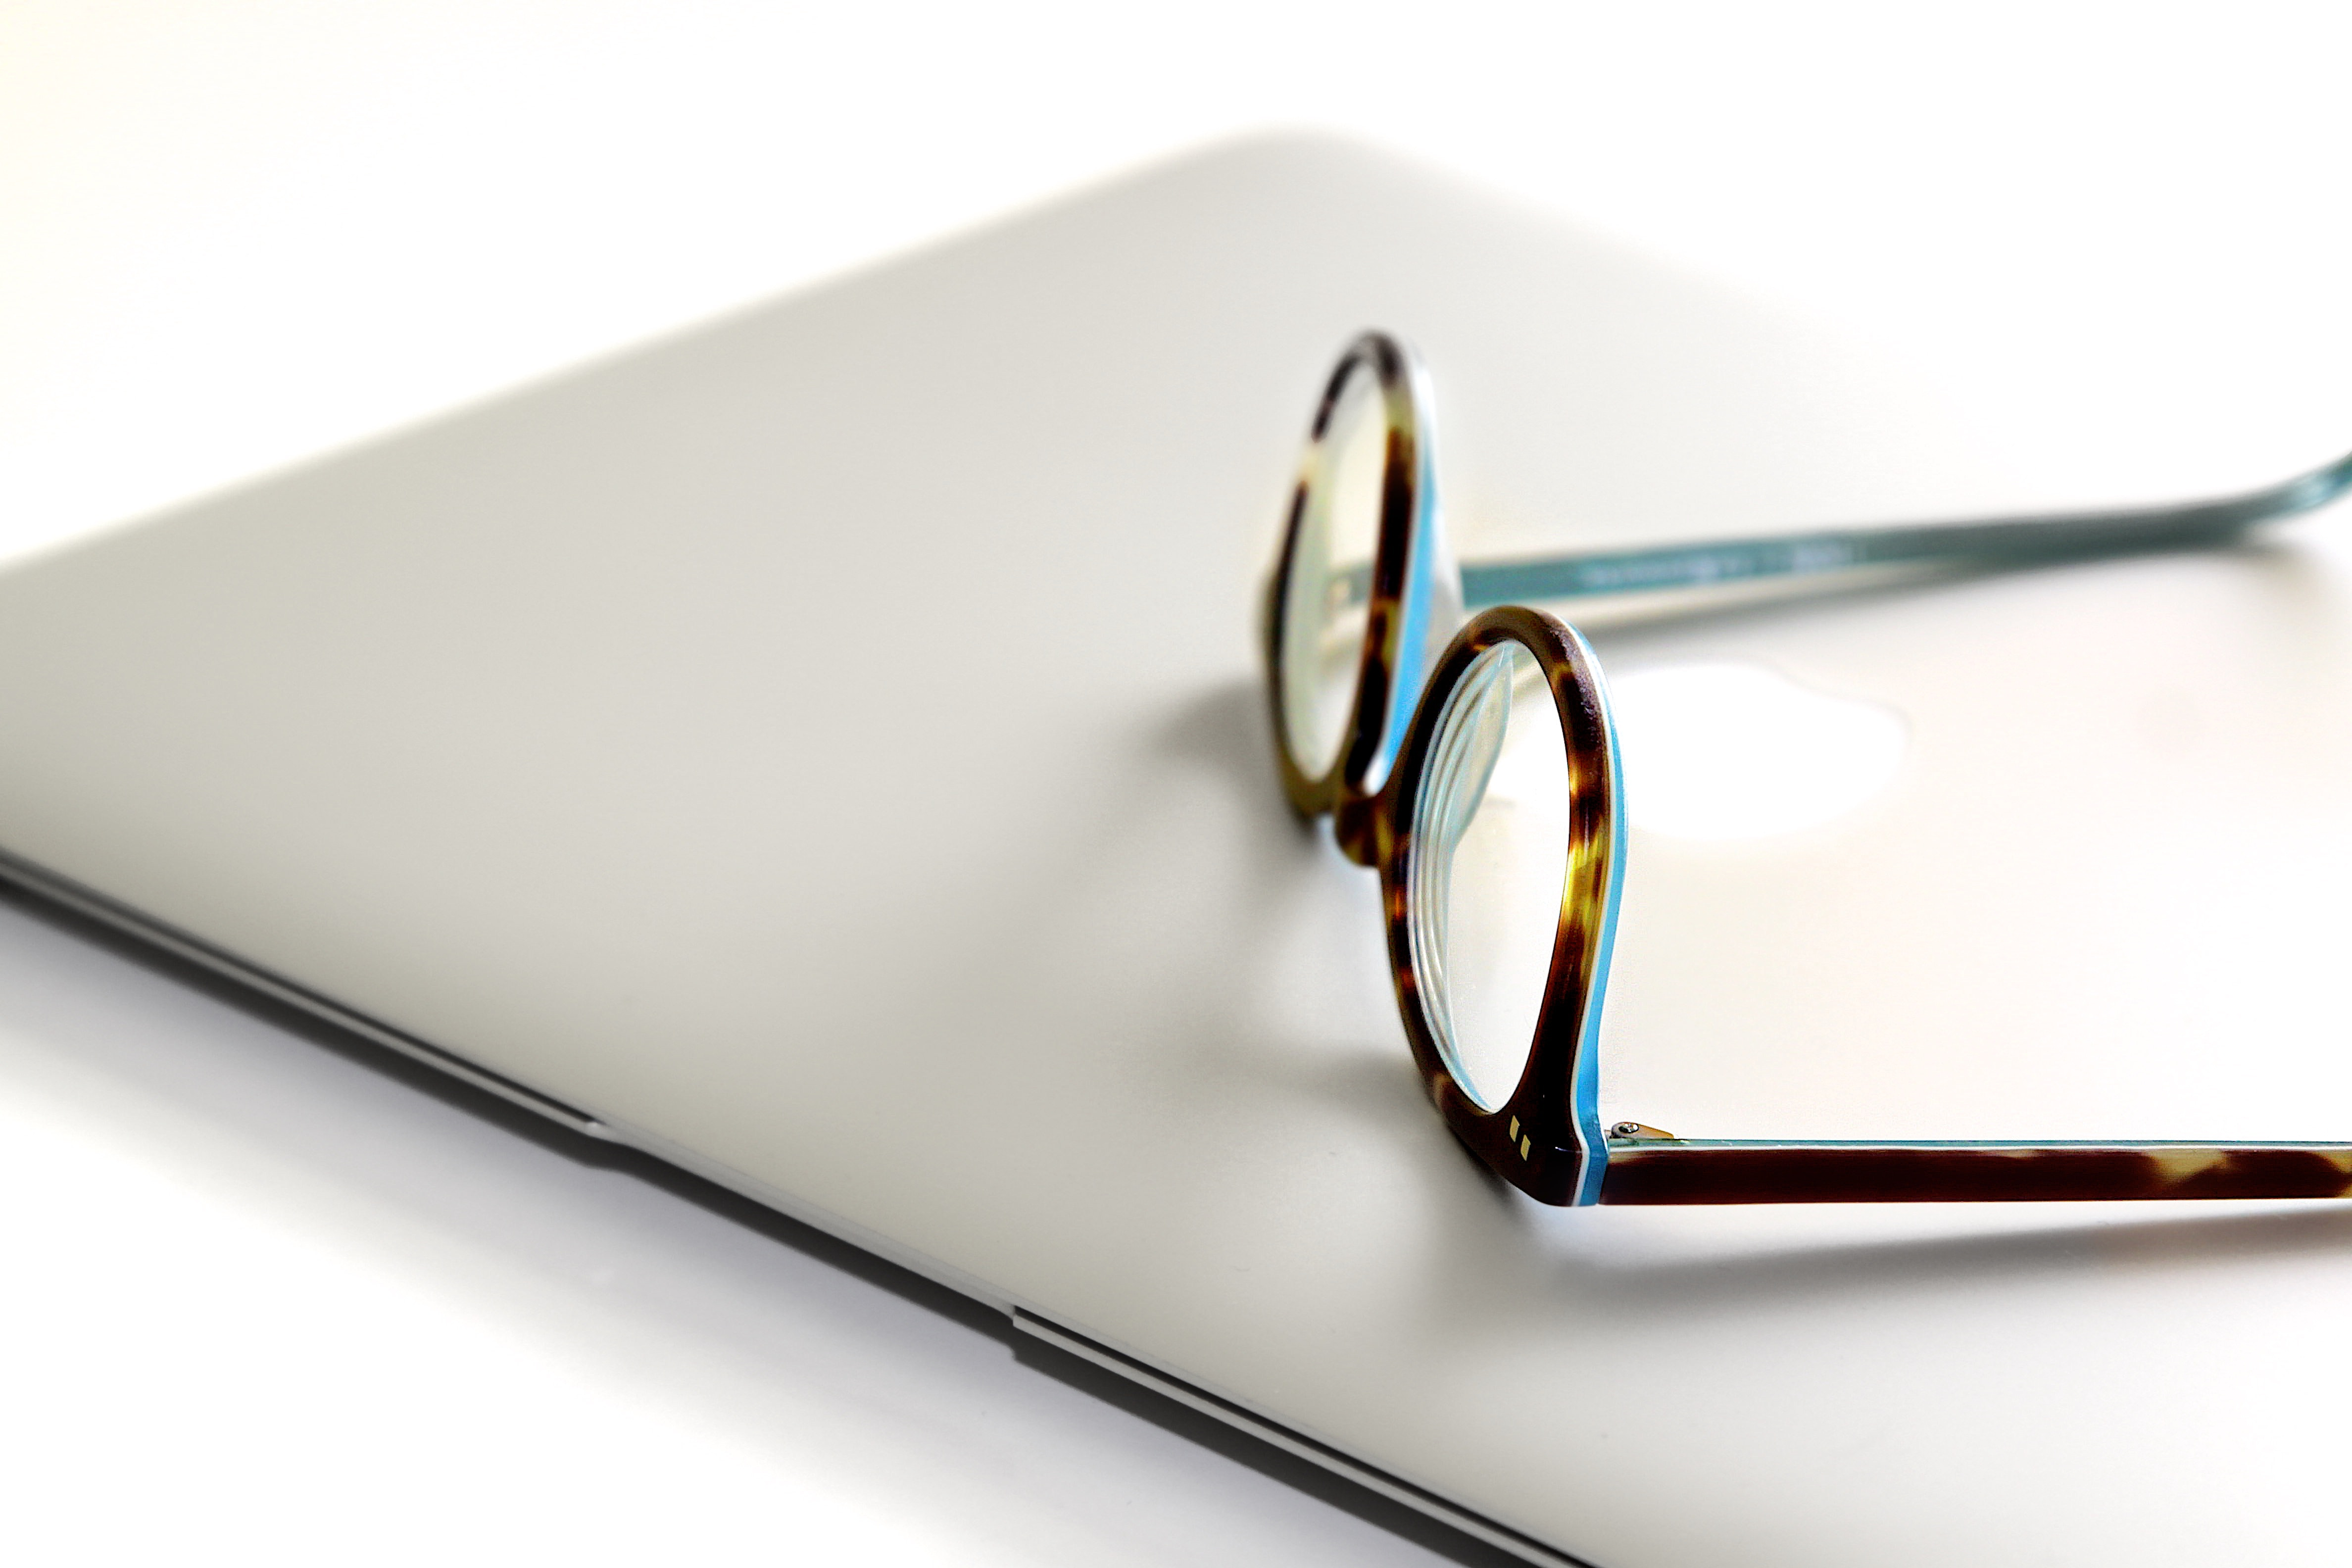 5357fc54a9 Black and Blue Framed Eyeglasses on Silver Laptop · Free Stock Photo